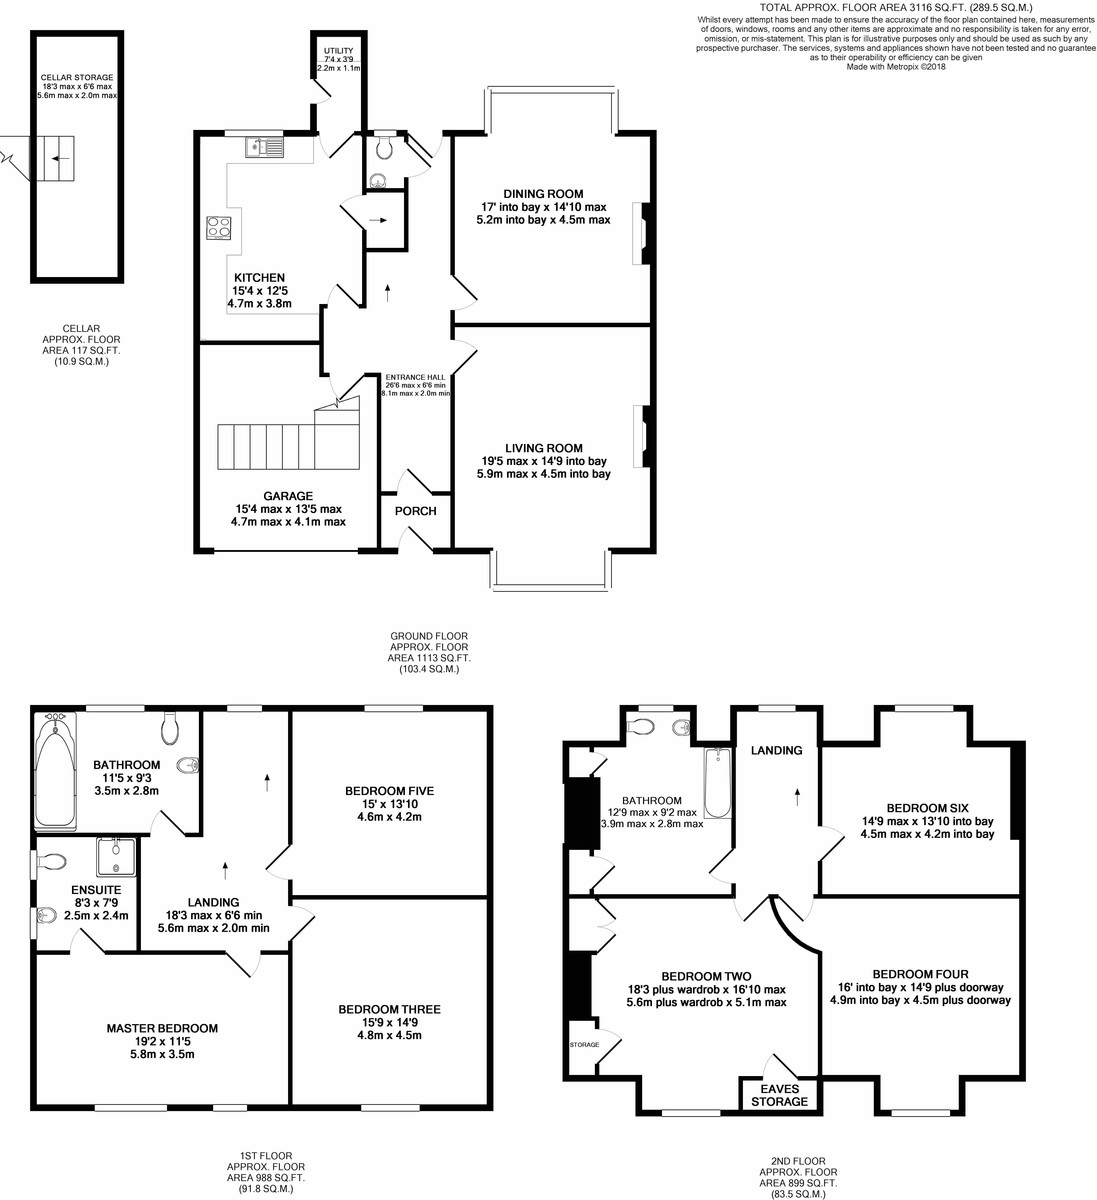 Rotton Park Road, Edgbaston floorplan 1 of 1